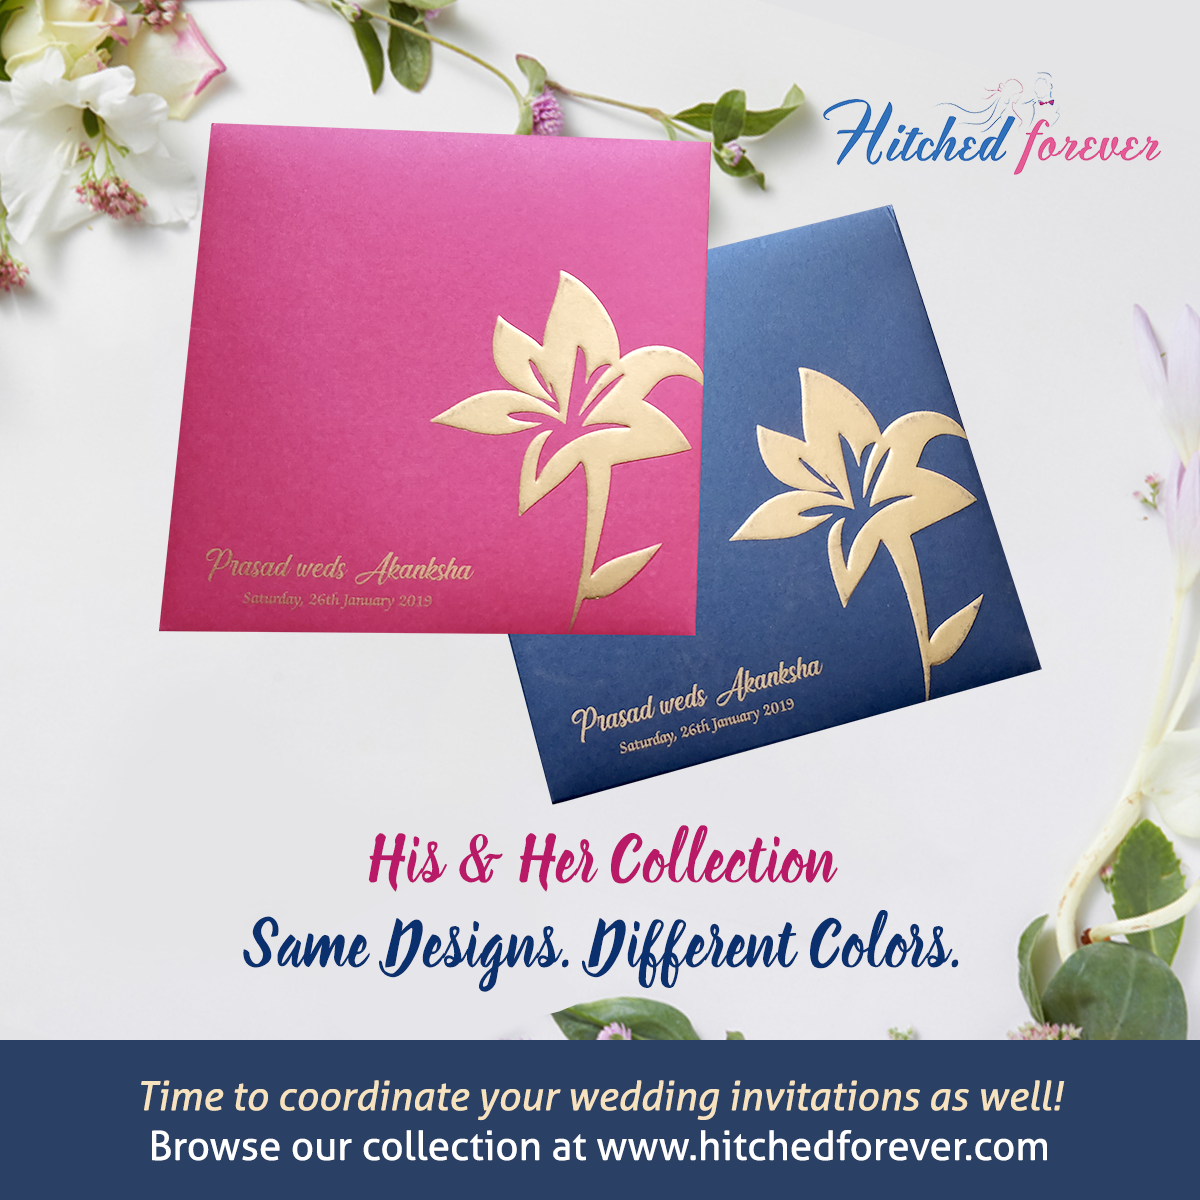 Now match your wedding invites too! Coordinate your cards